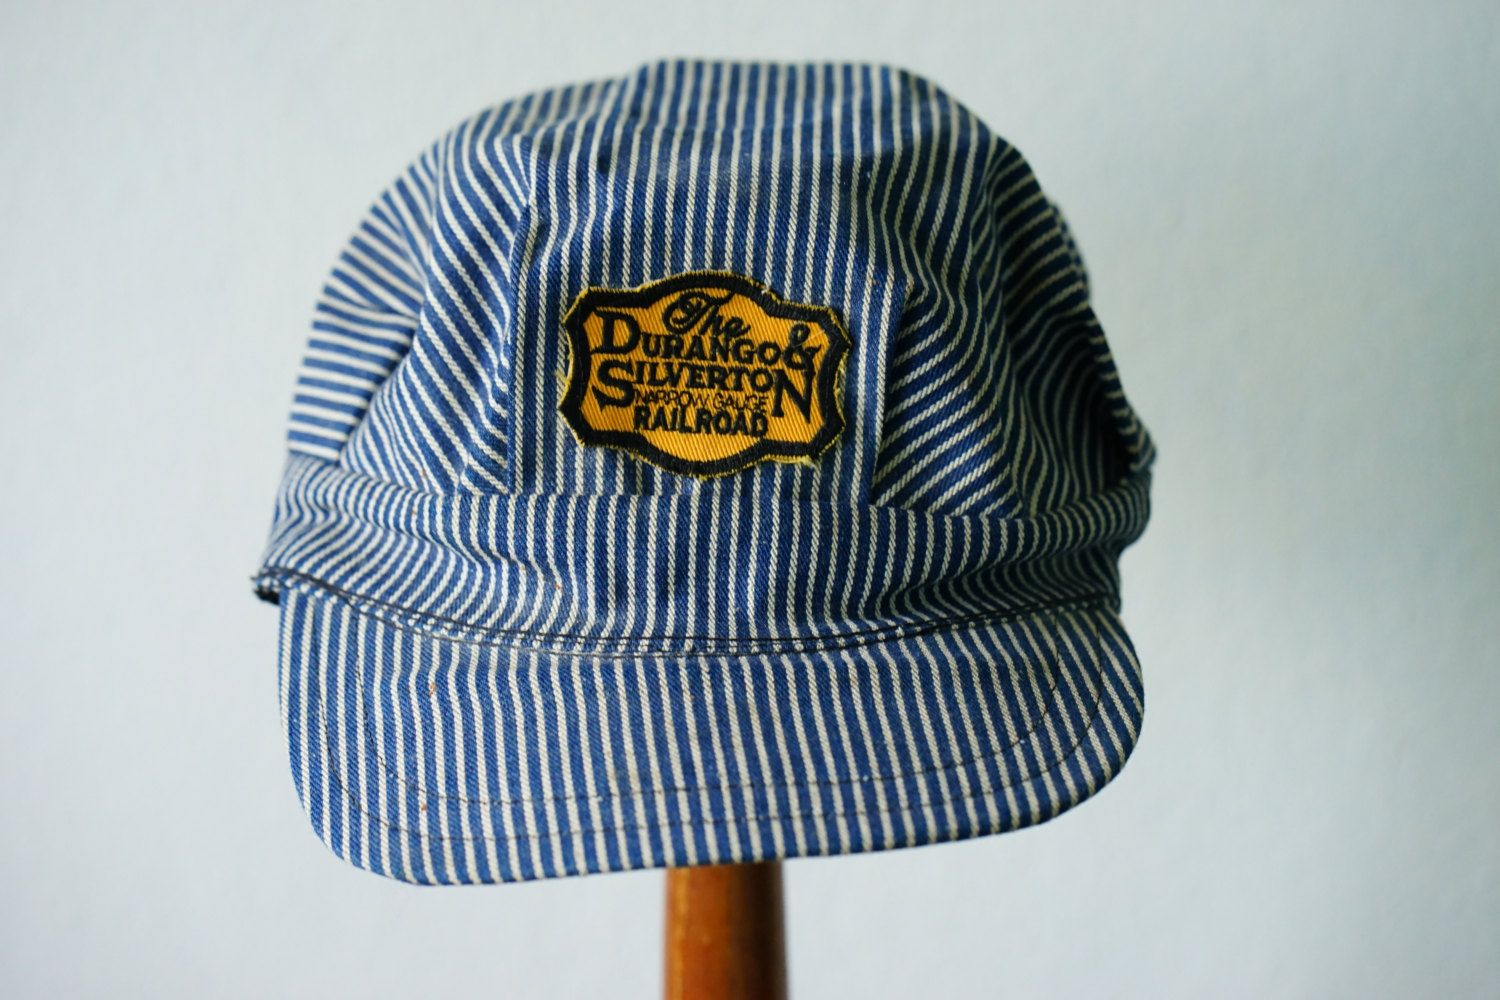 752ba5d265f Engineers Cap  Vintage Hat  Retro Railroad Hat  Denim Cap  Snapback Cap   Hickory Stripe Engineer Cap  Stripe Hat  Durango Silverton Cap by  hisandhervintage ...